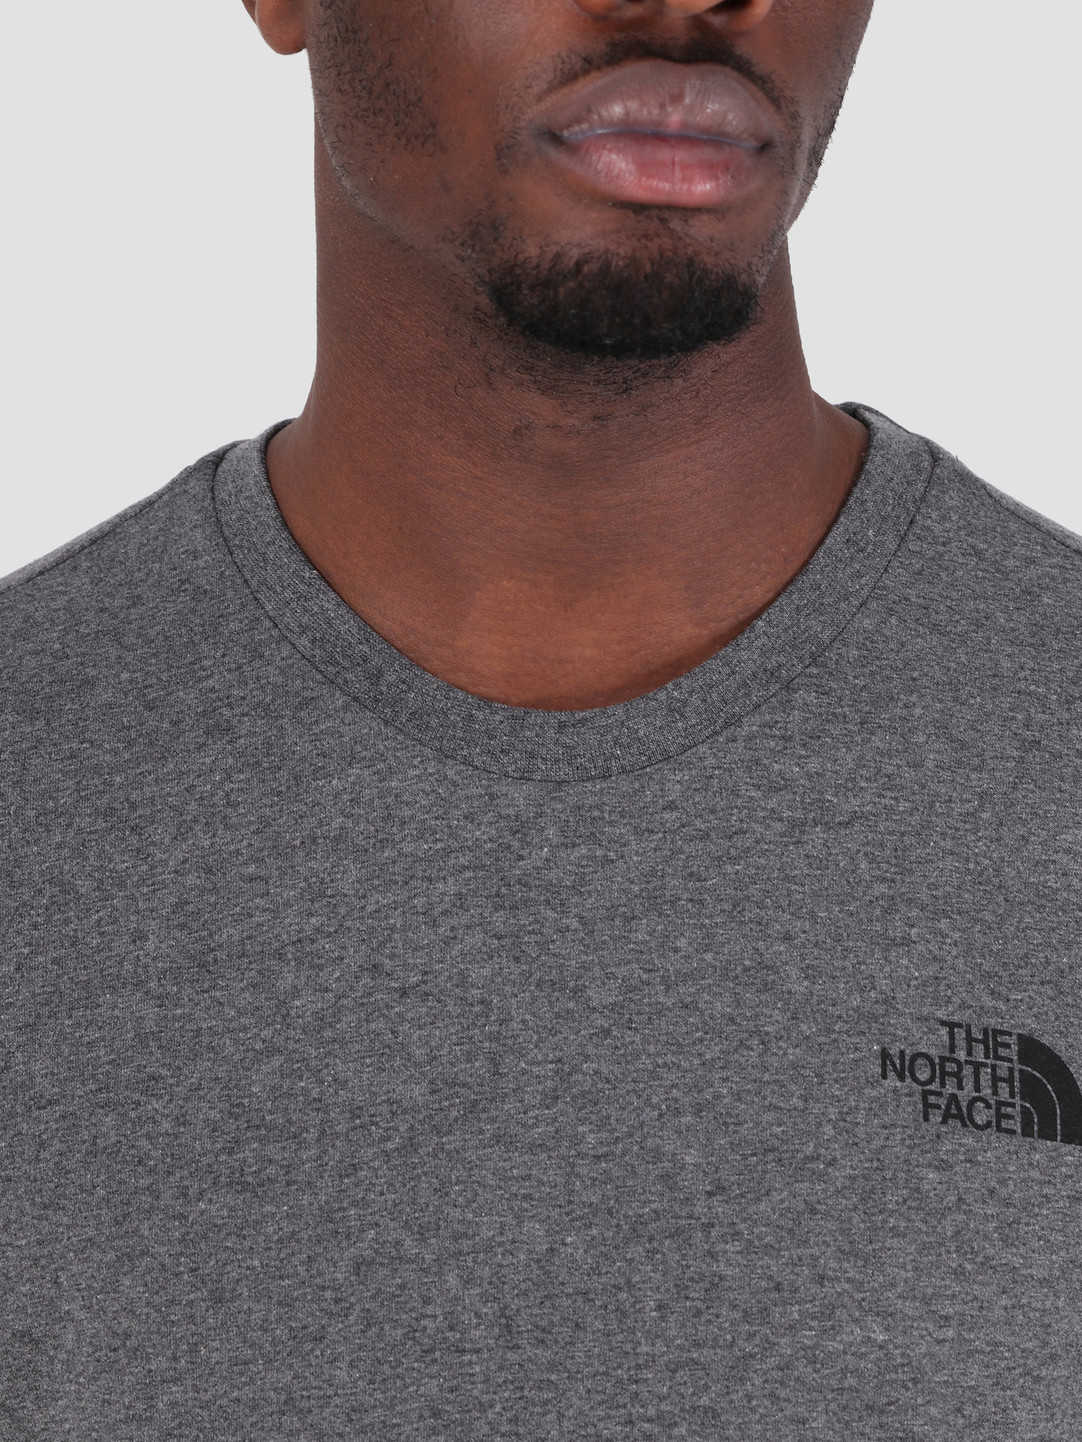 The North Face The North Face Simple Dome T-Shirt TNF Medium Grey Heather T92TX5JBV